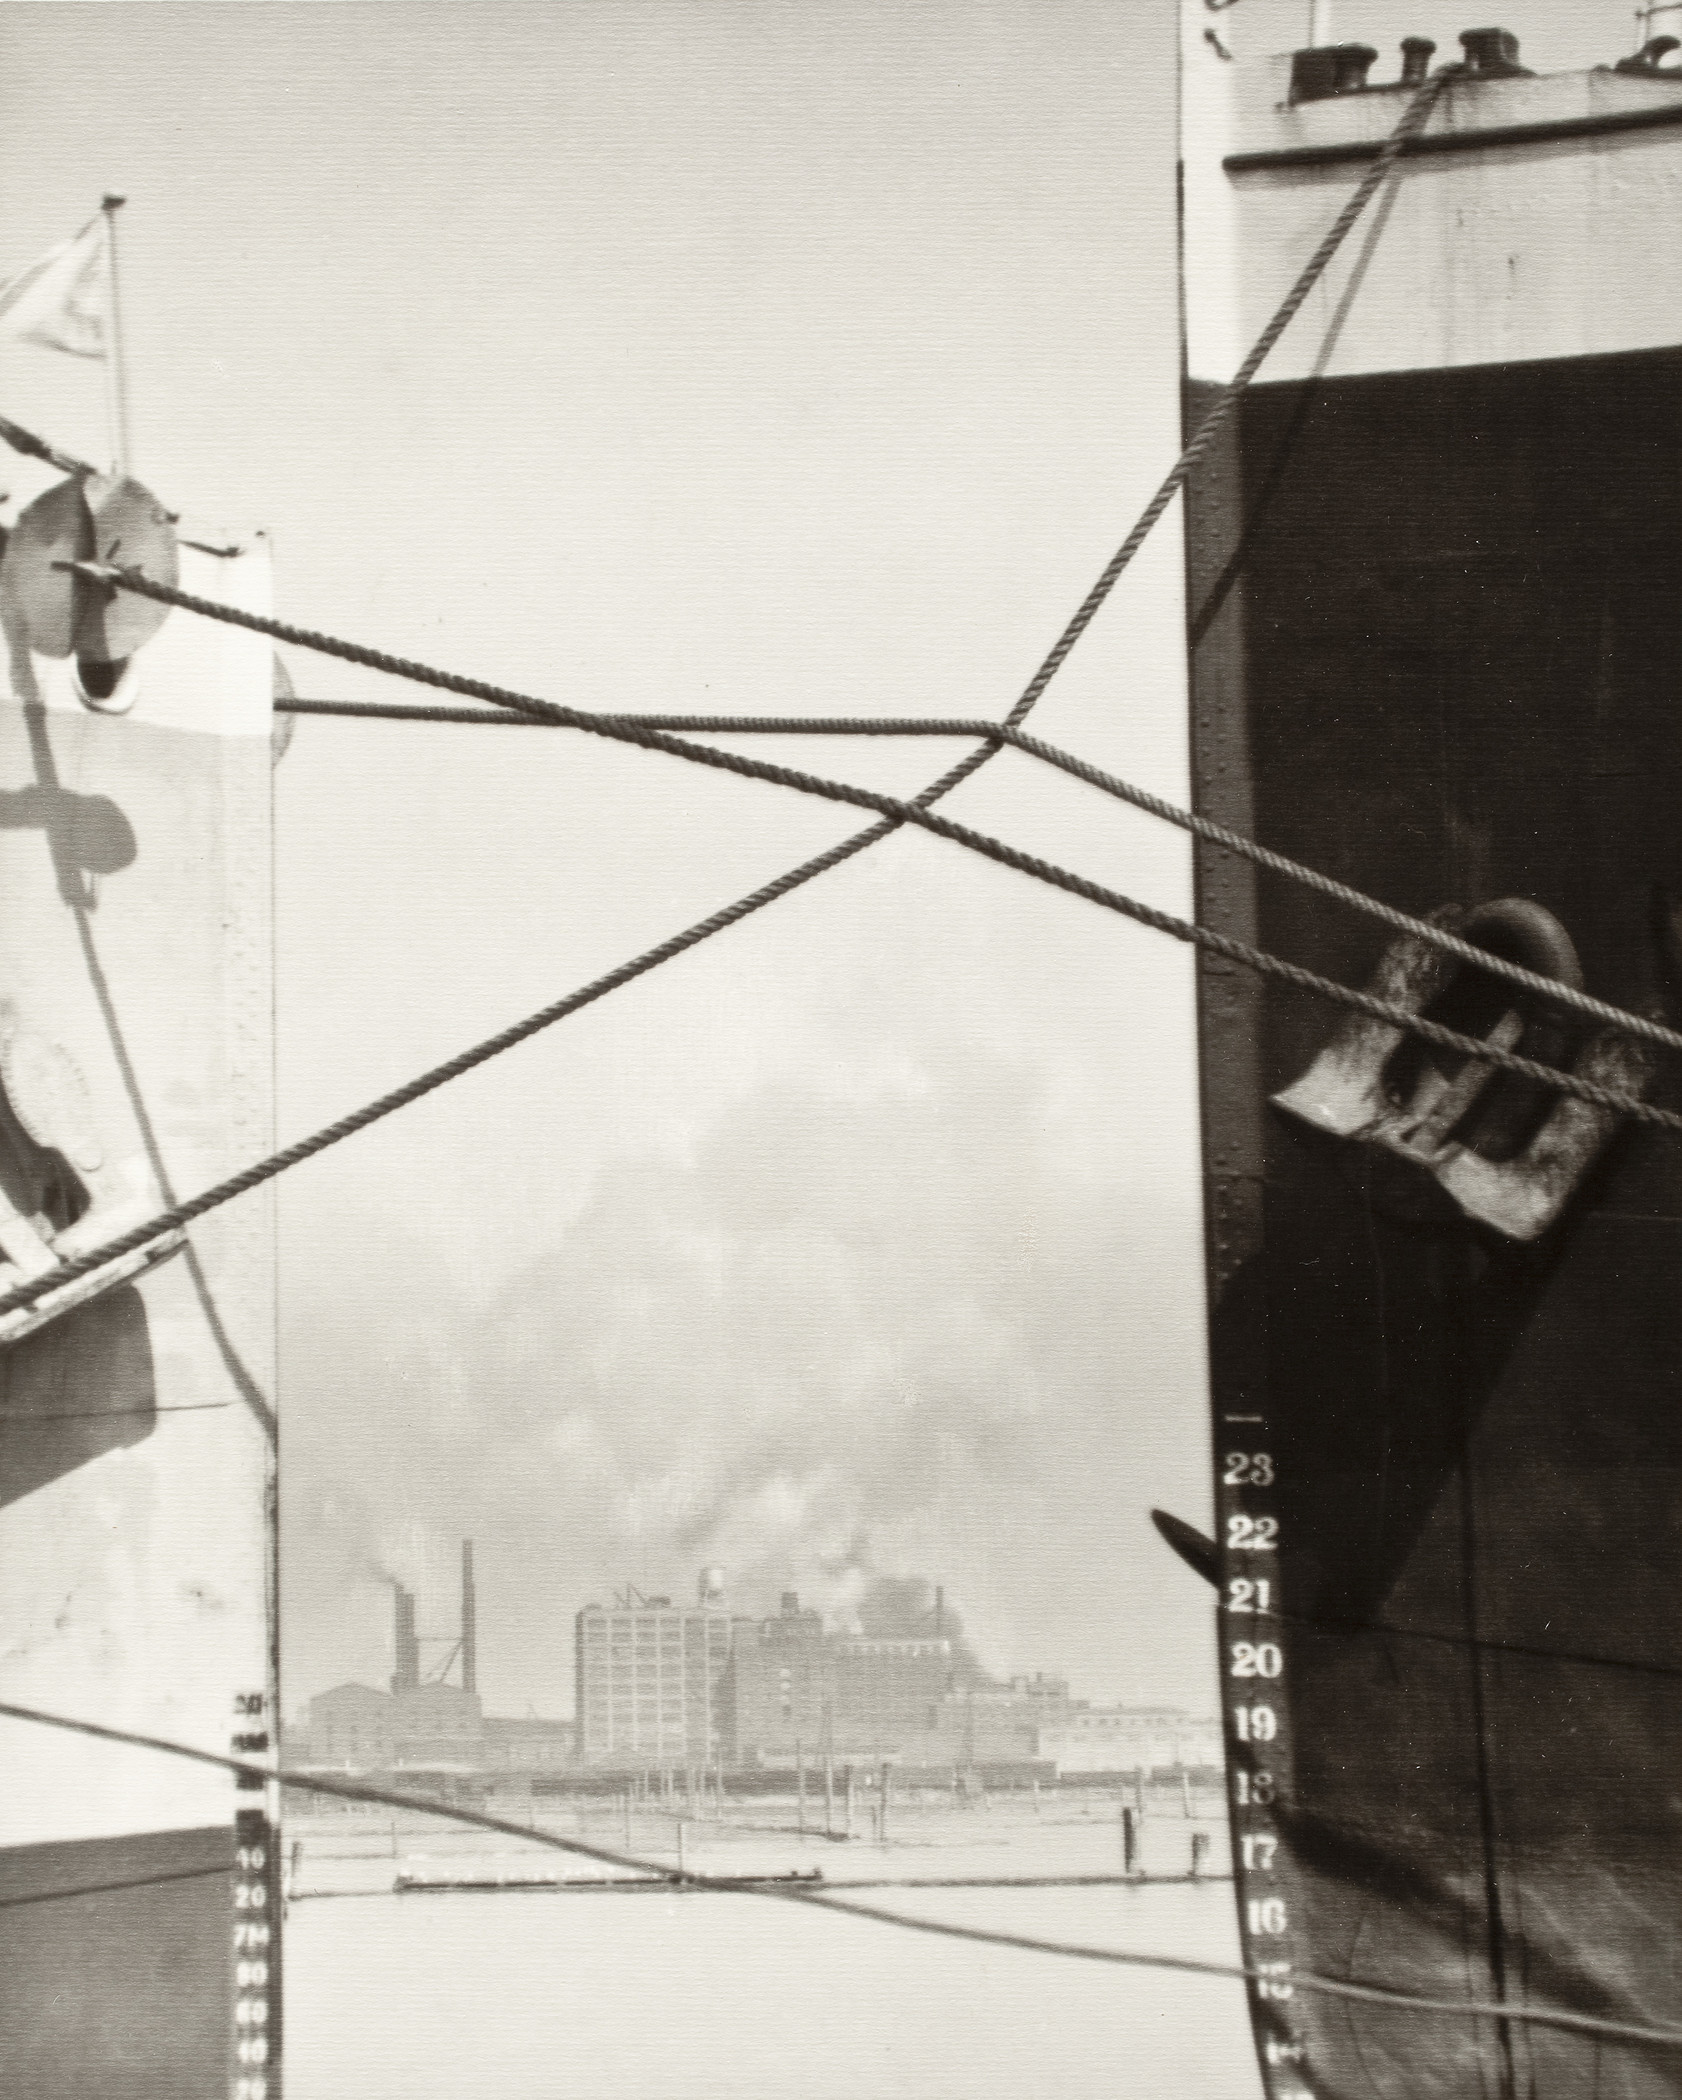 William Edward Dassonville, Ropes Between Boats, 1920s, Los Angeles County Museum of Art, The Marjorie and Leonard Vernon Collection, gift of The Annenberg Foundation, acquired from Carol Vernon and Robert Turbin, © Estate of William E. Dassonville